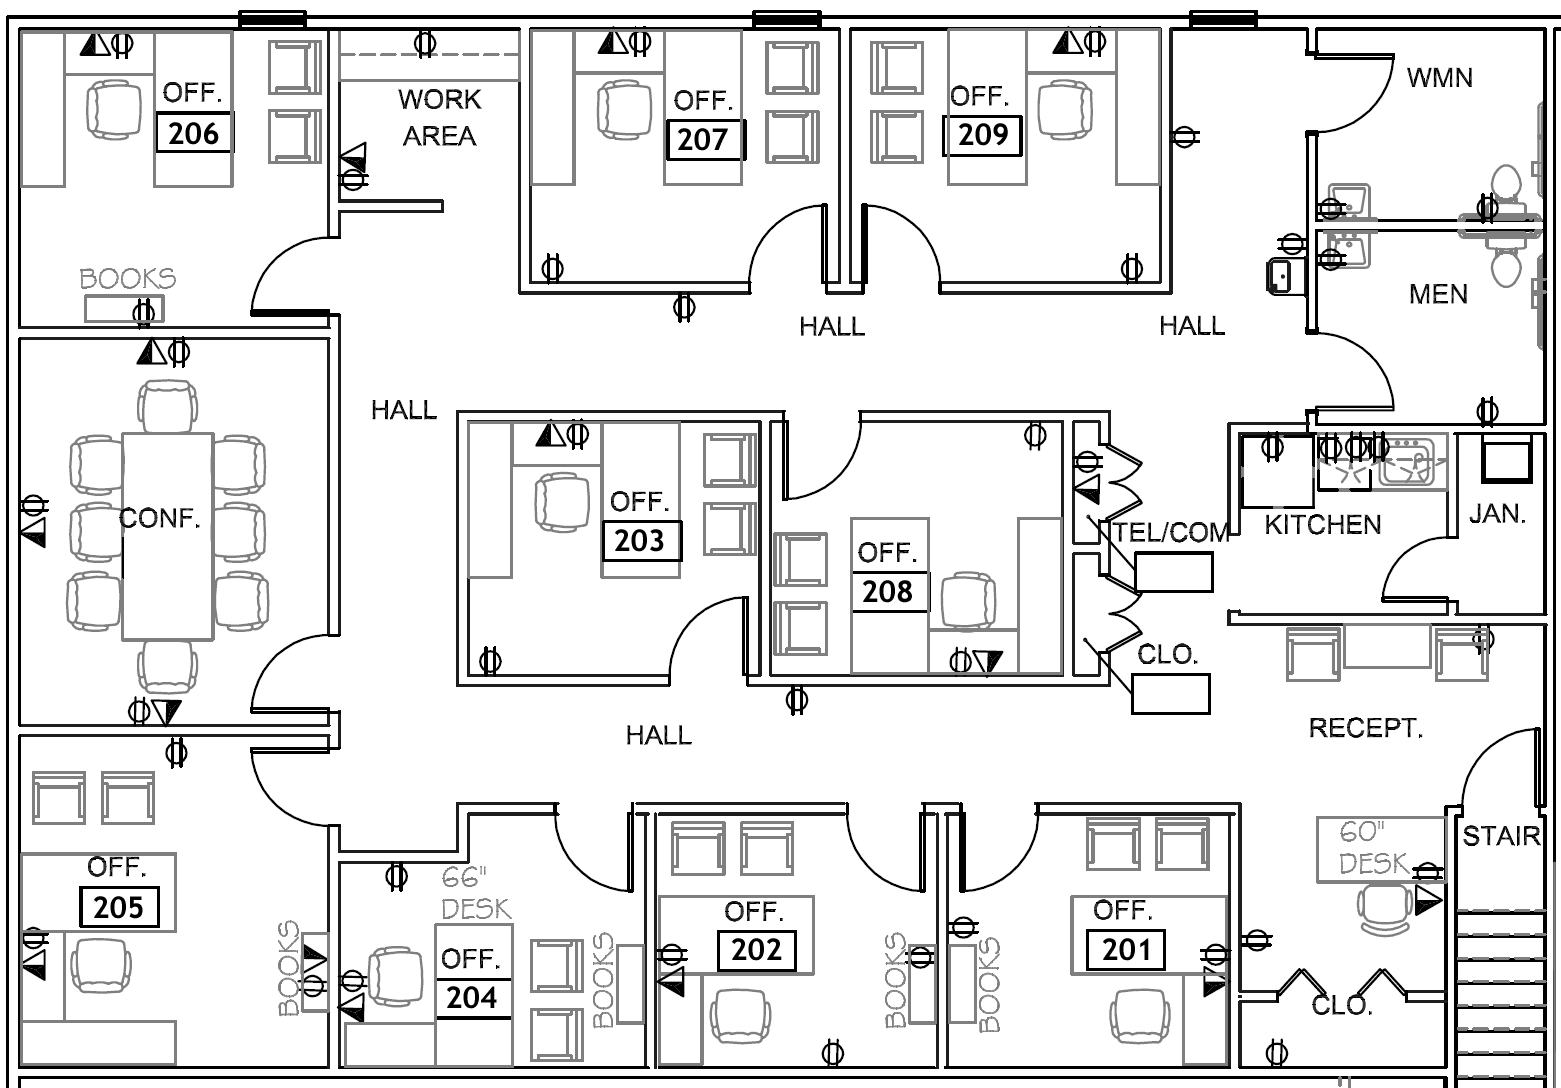 Office Layouts Map Of Timezones In United States Office Furniture Layout  Templates